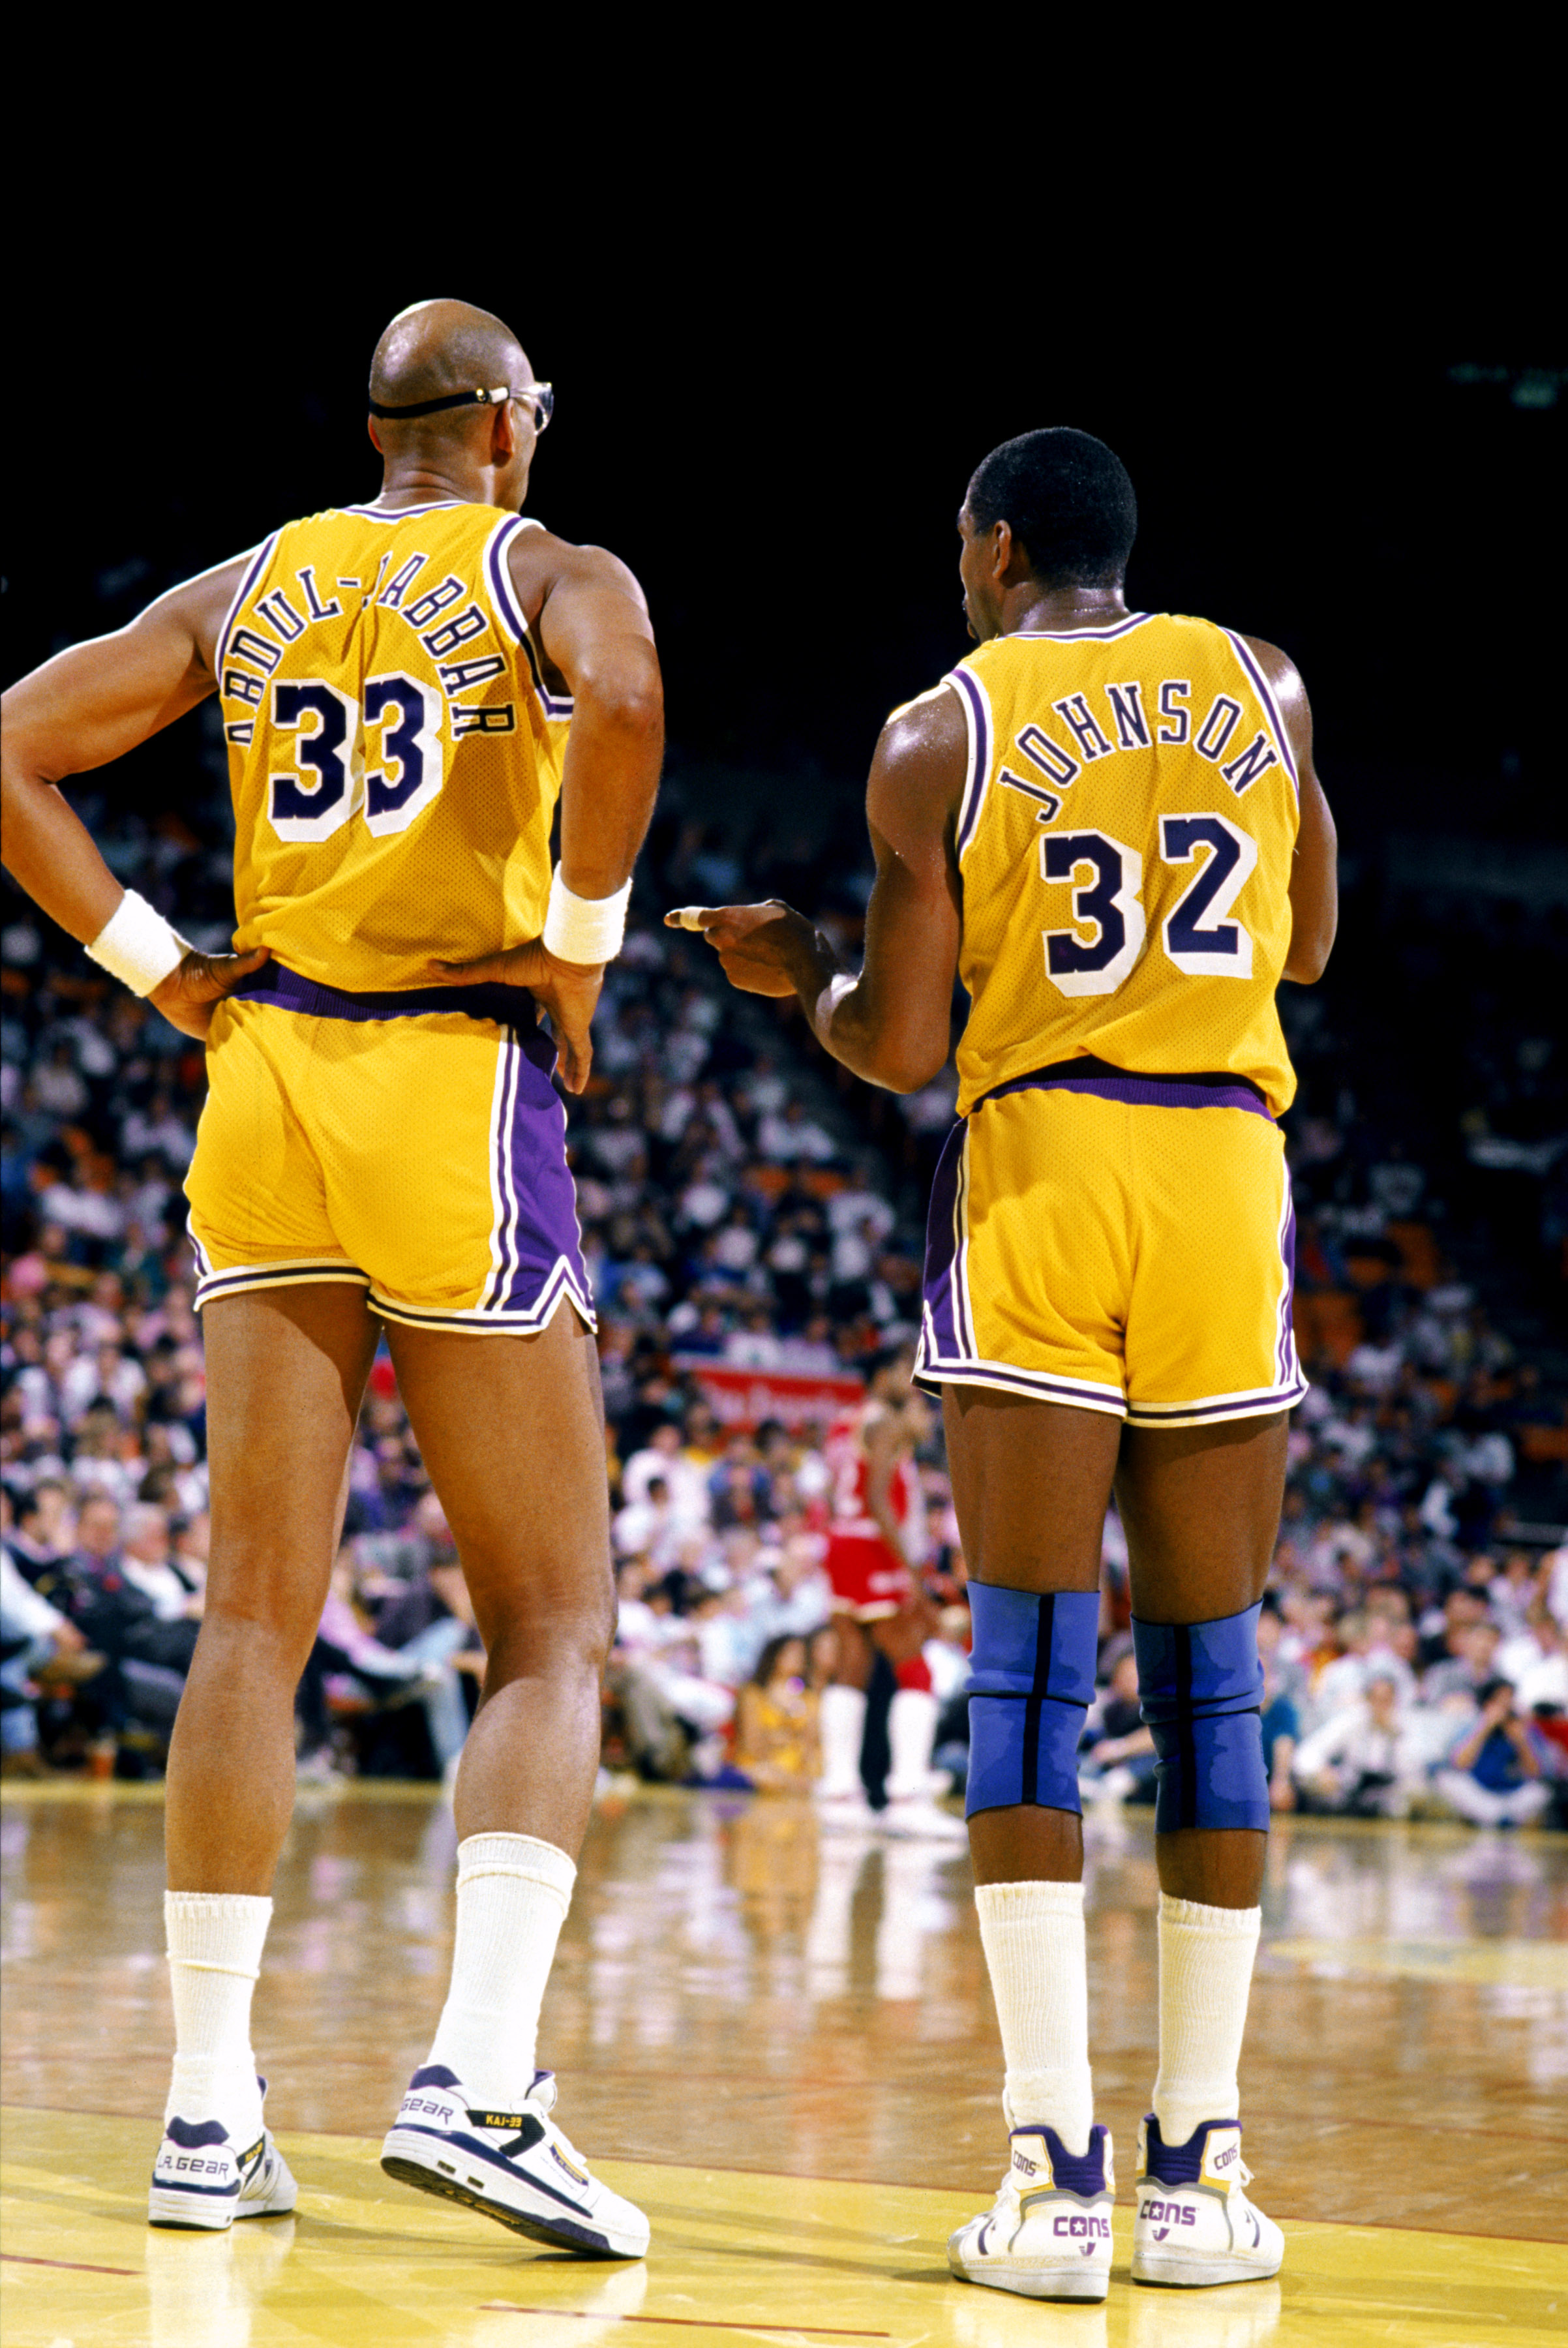 LOS ANGELES - 1988:  Kareem Abdul-Jabbar #33 of the Los Angeles Lakers listens to Magic Johnson #32 during an NBA game at the Great Western Forum in Los Angeles, California in 1988. (Photo by Mike Powell/Getty Images)